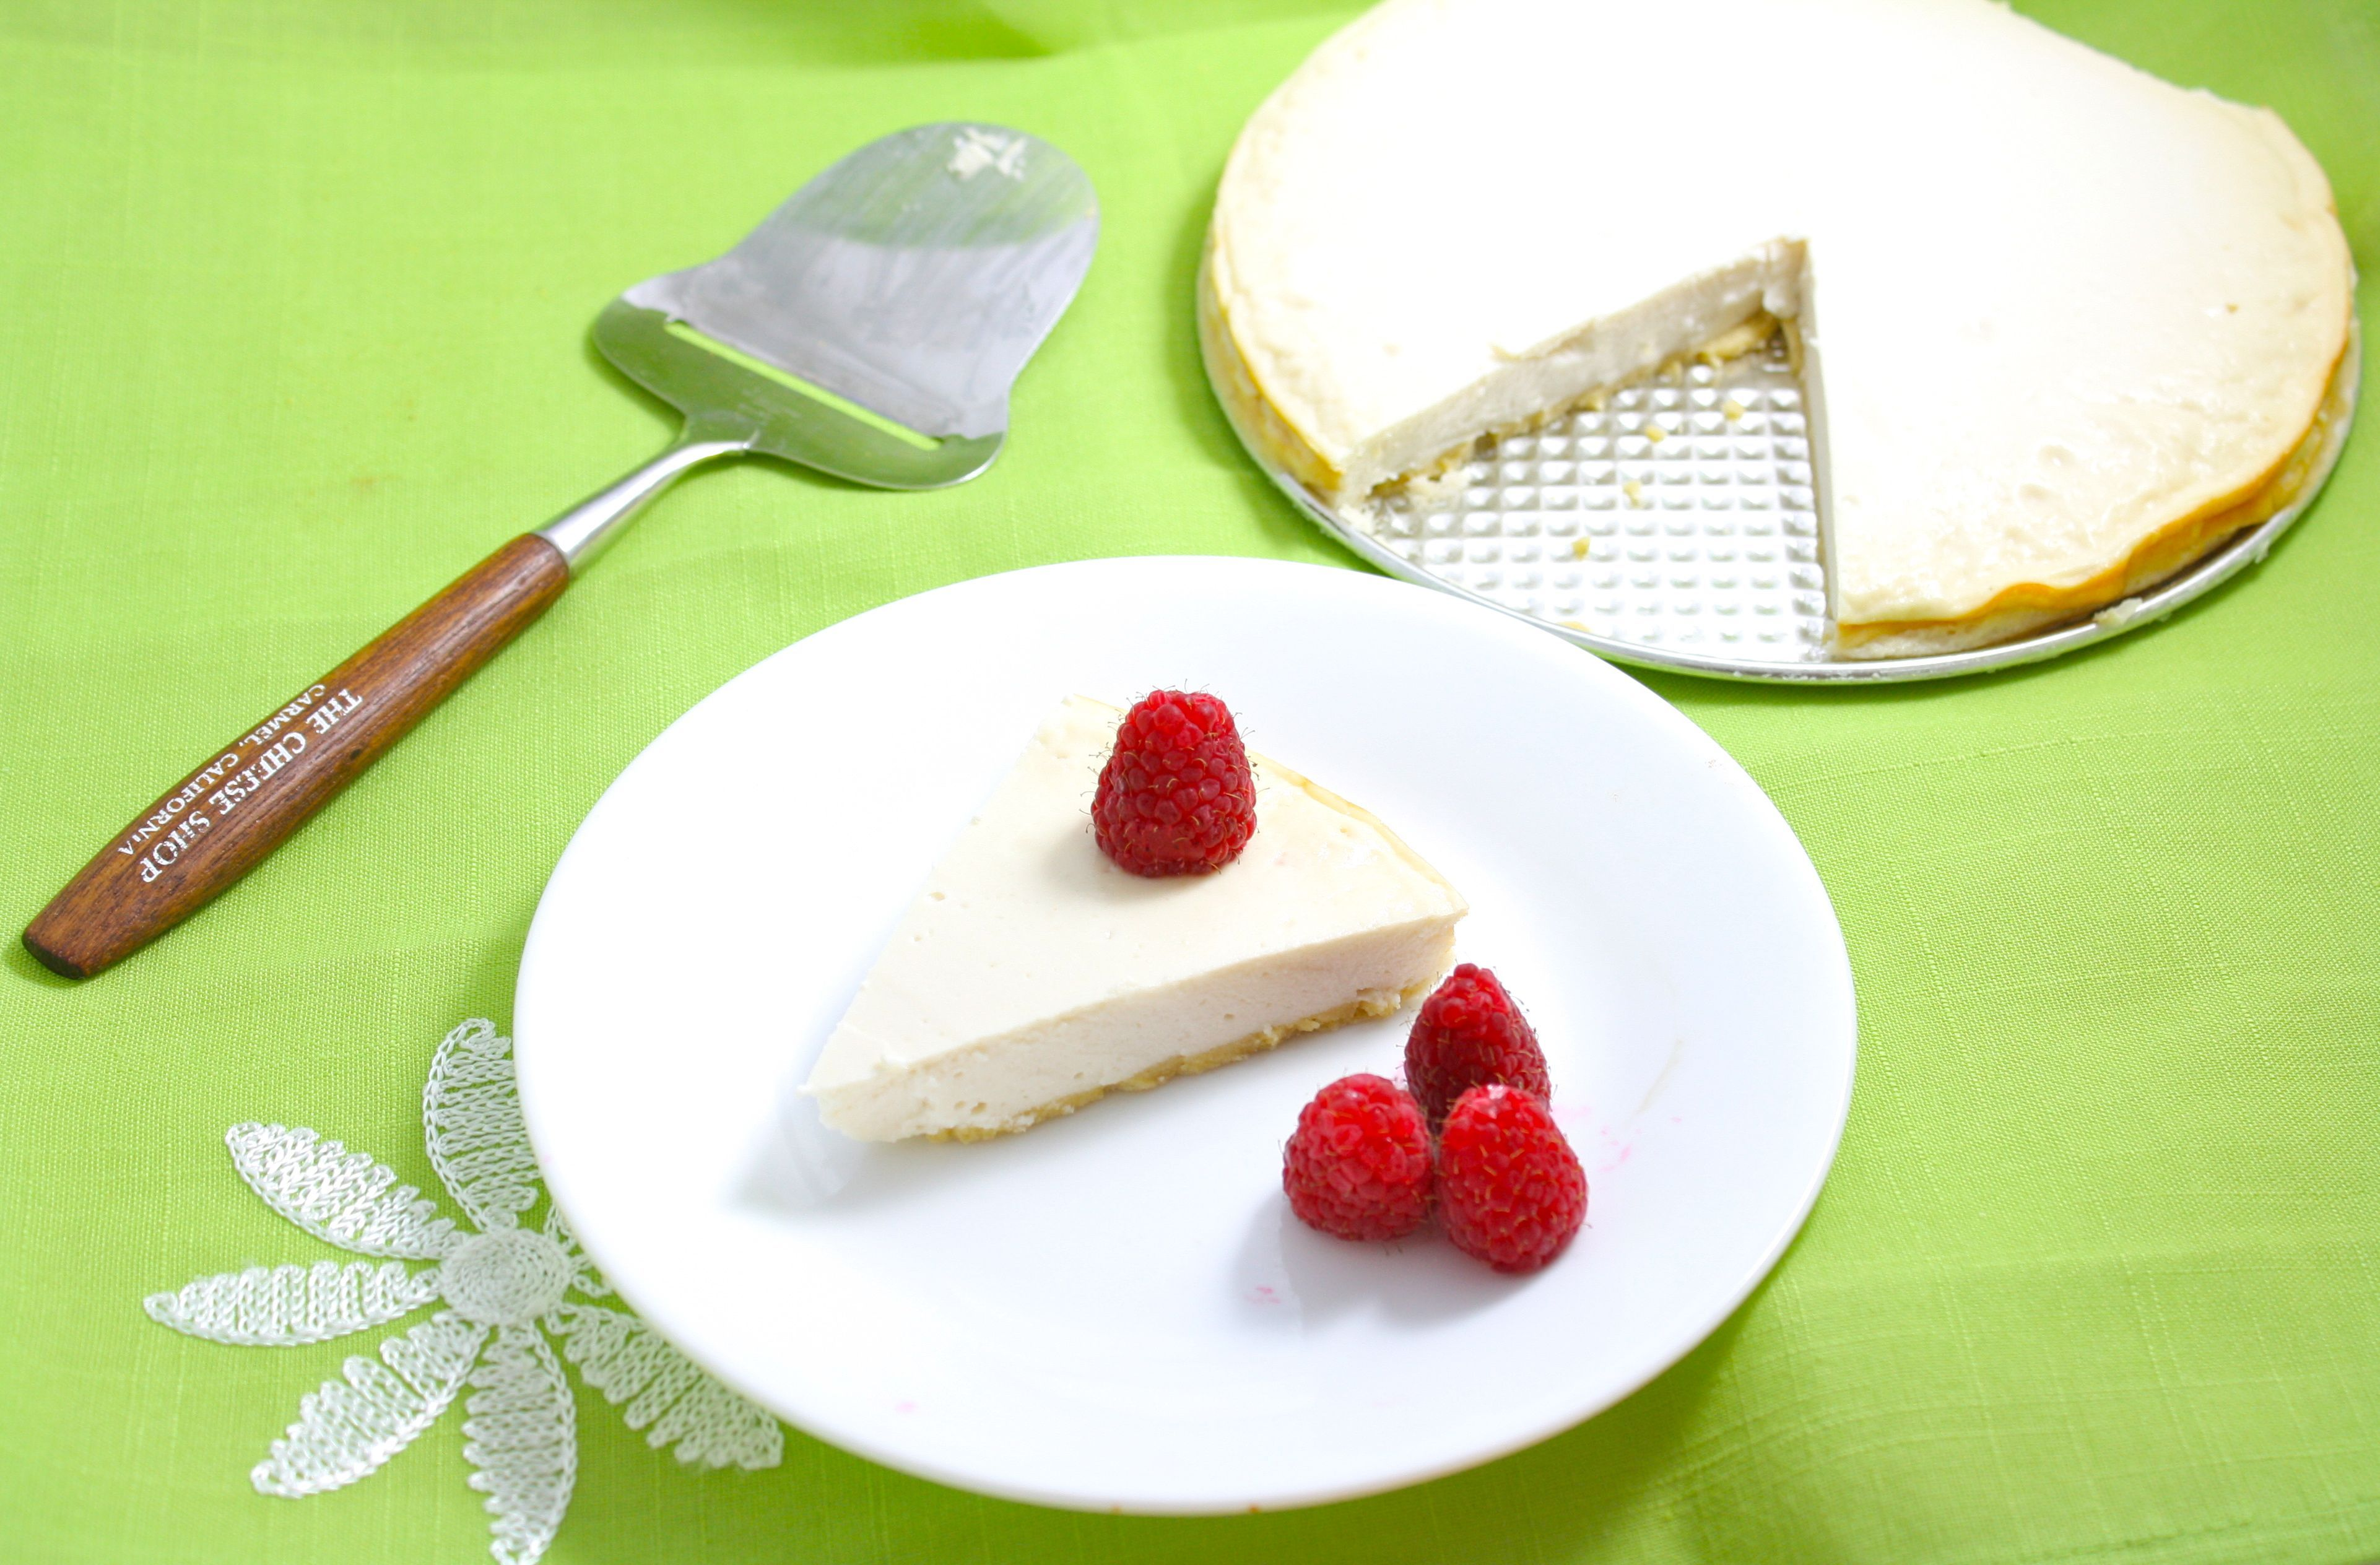 World's Healthiest Cheesecake (Gluten Free, Grain Free, Low Carb, Sugar Free, Vegan Option) Only 64 calories a slice!